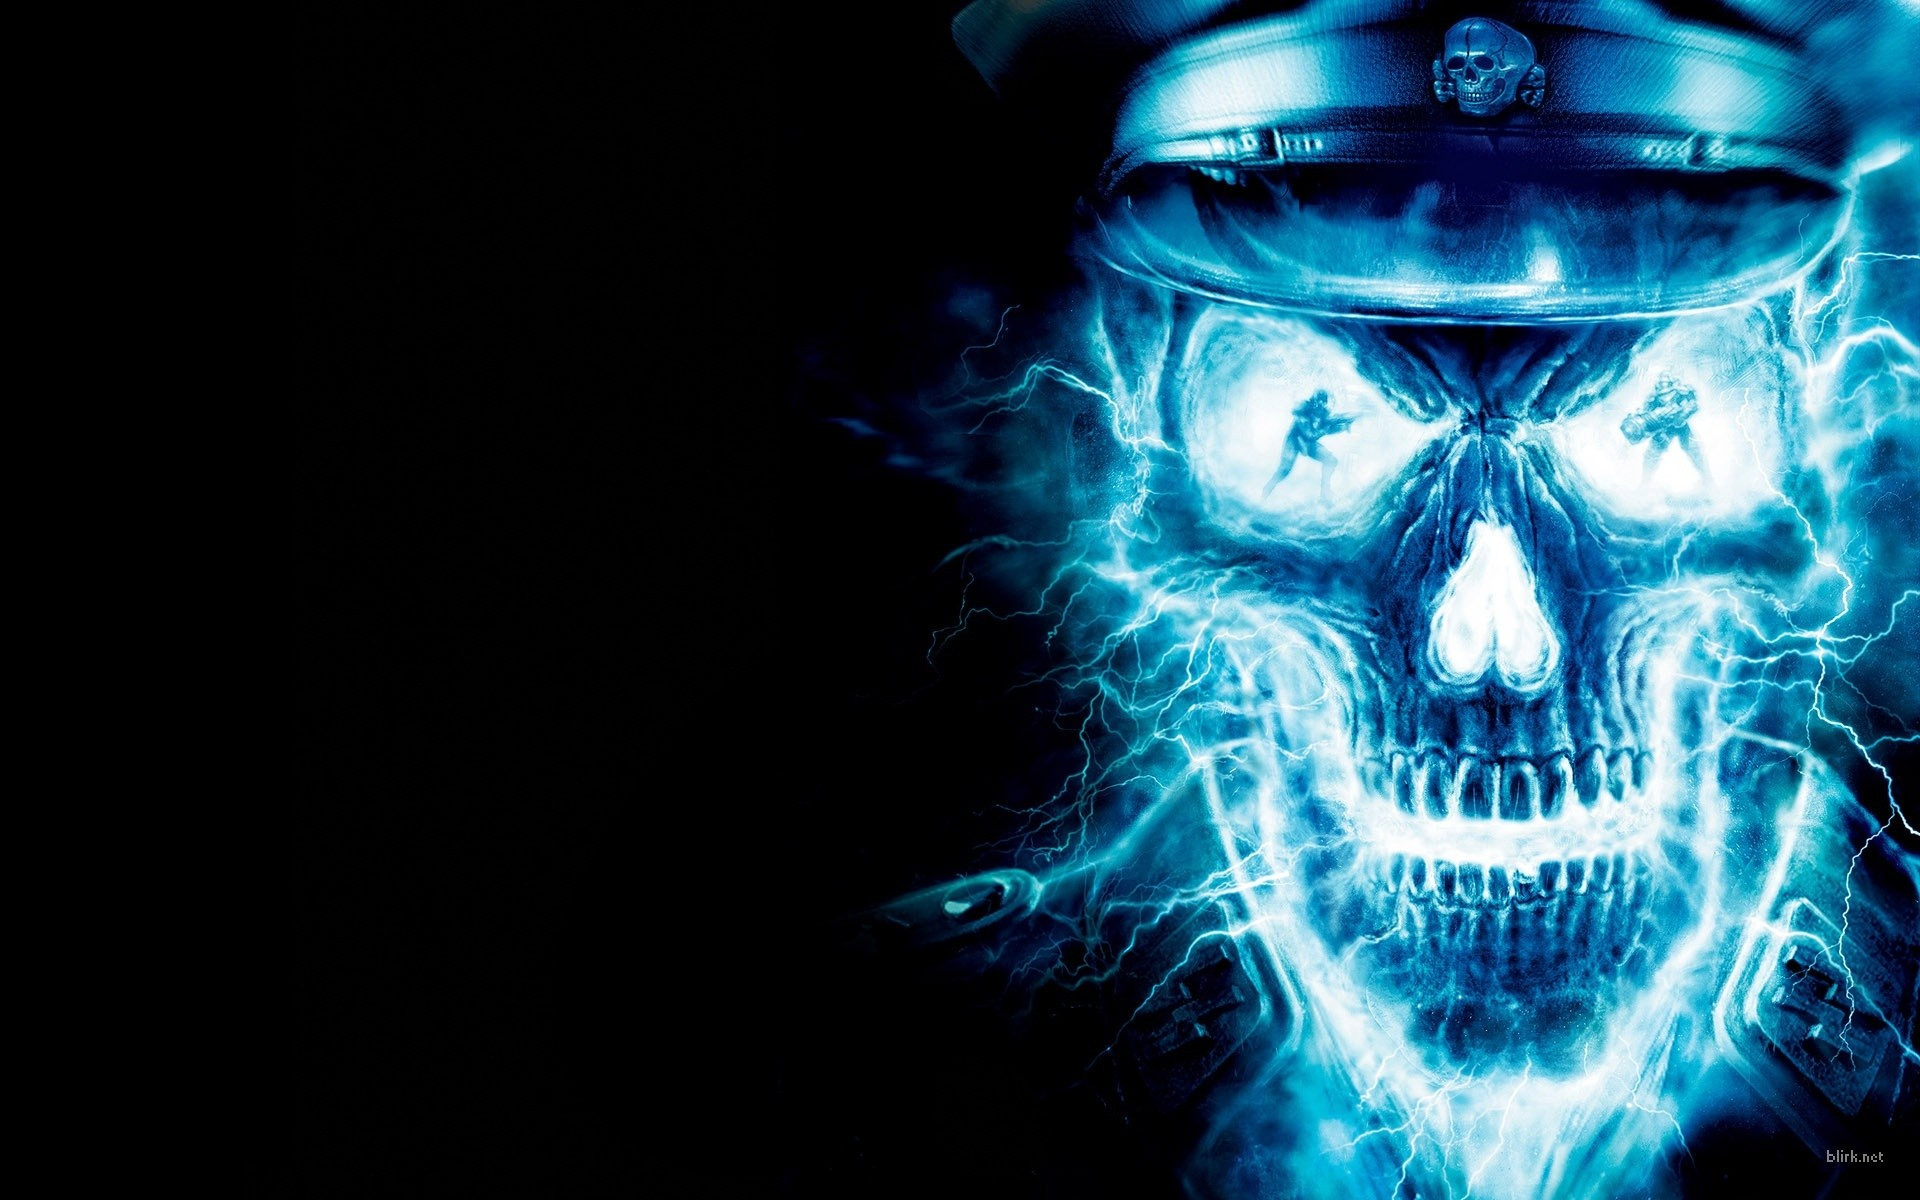 Blue Neon Wallpaper Skull Xpx Bright Wallpapers 1920x1200px